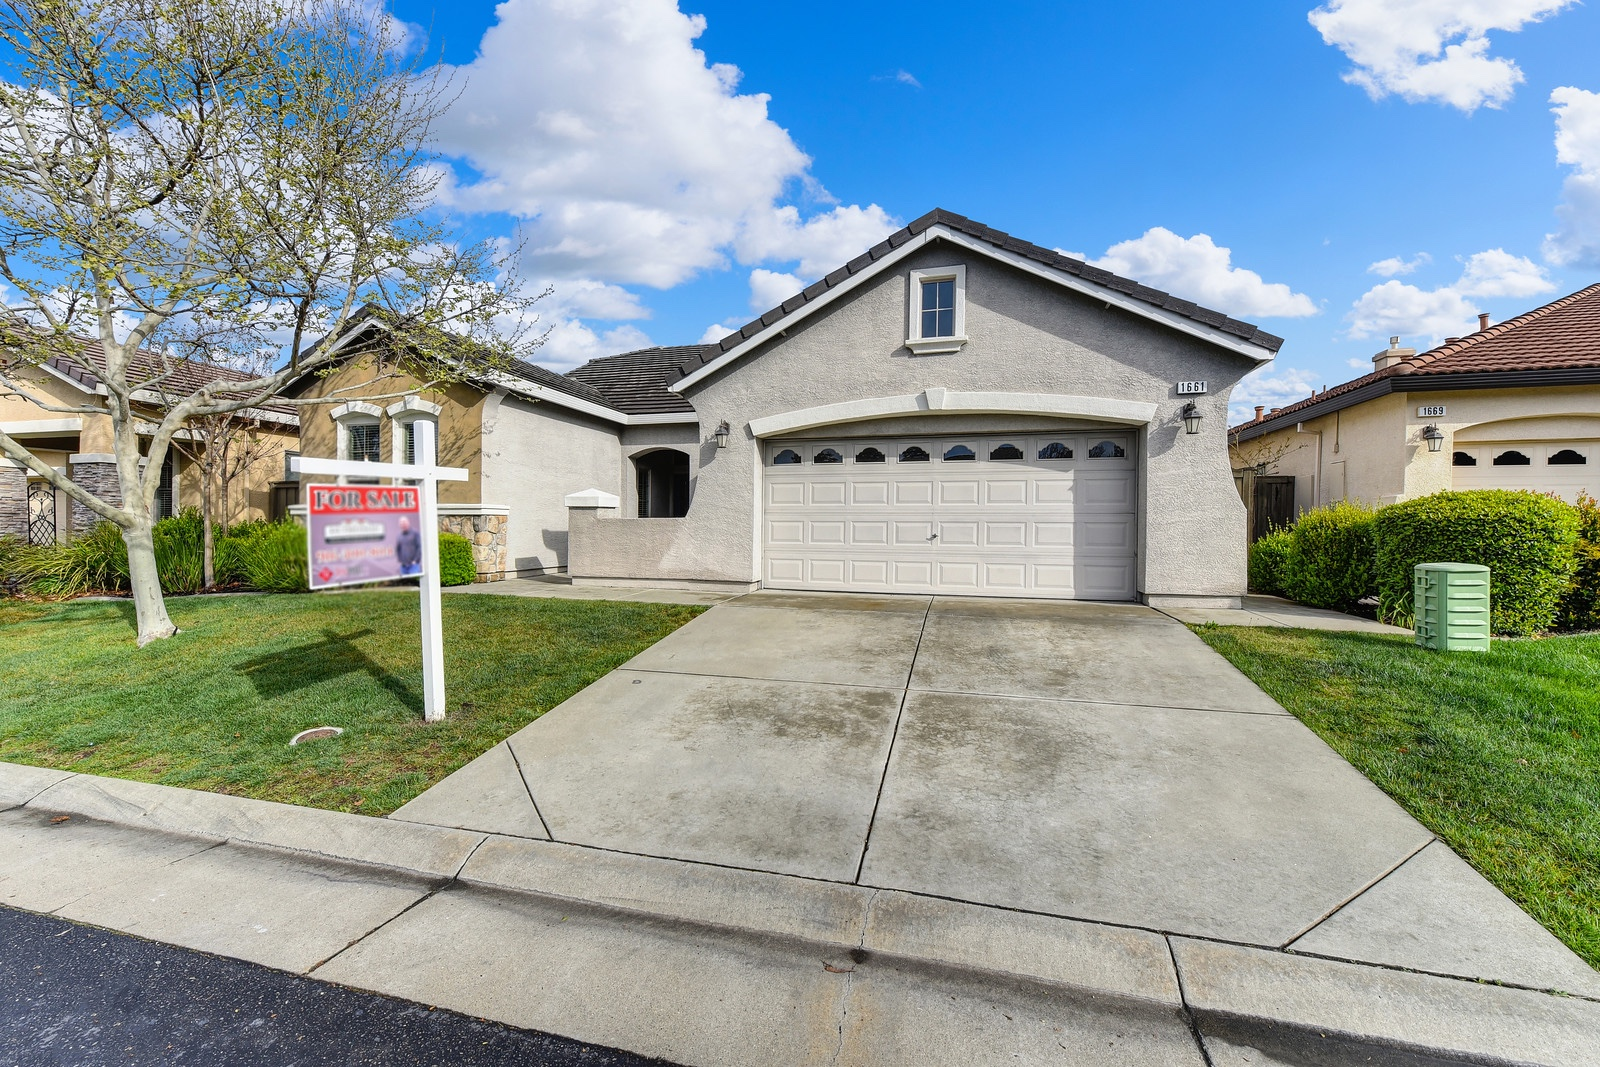 West Roseville gated community one story beauty!